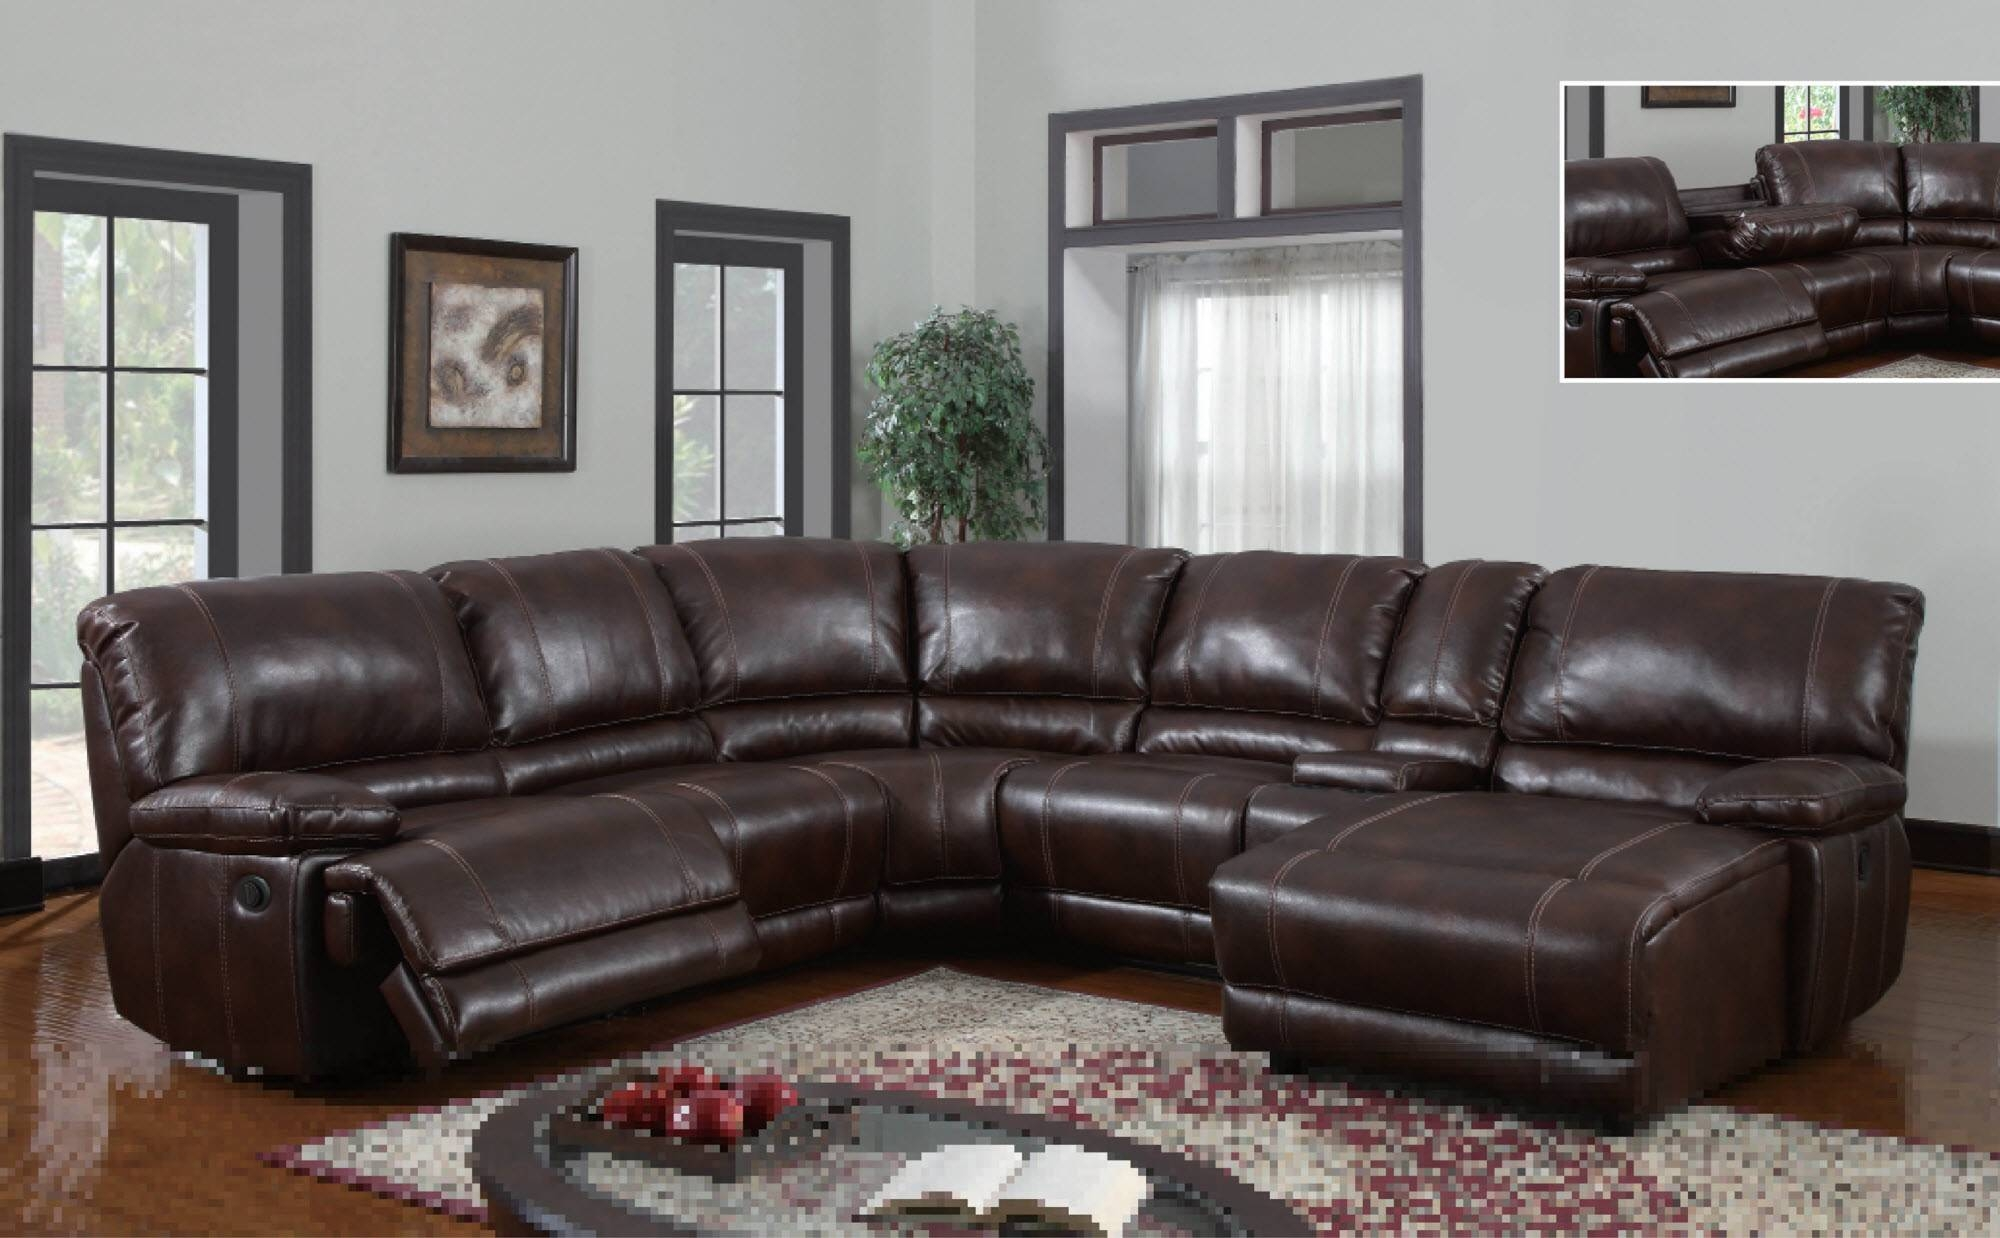 Elegant Sectional Sofa With Recliner And Chaise Lounge 89 For Your for Elegant Sectional Sofas (Image 8 of 30)